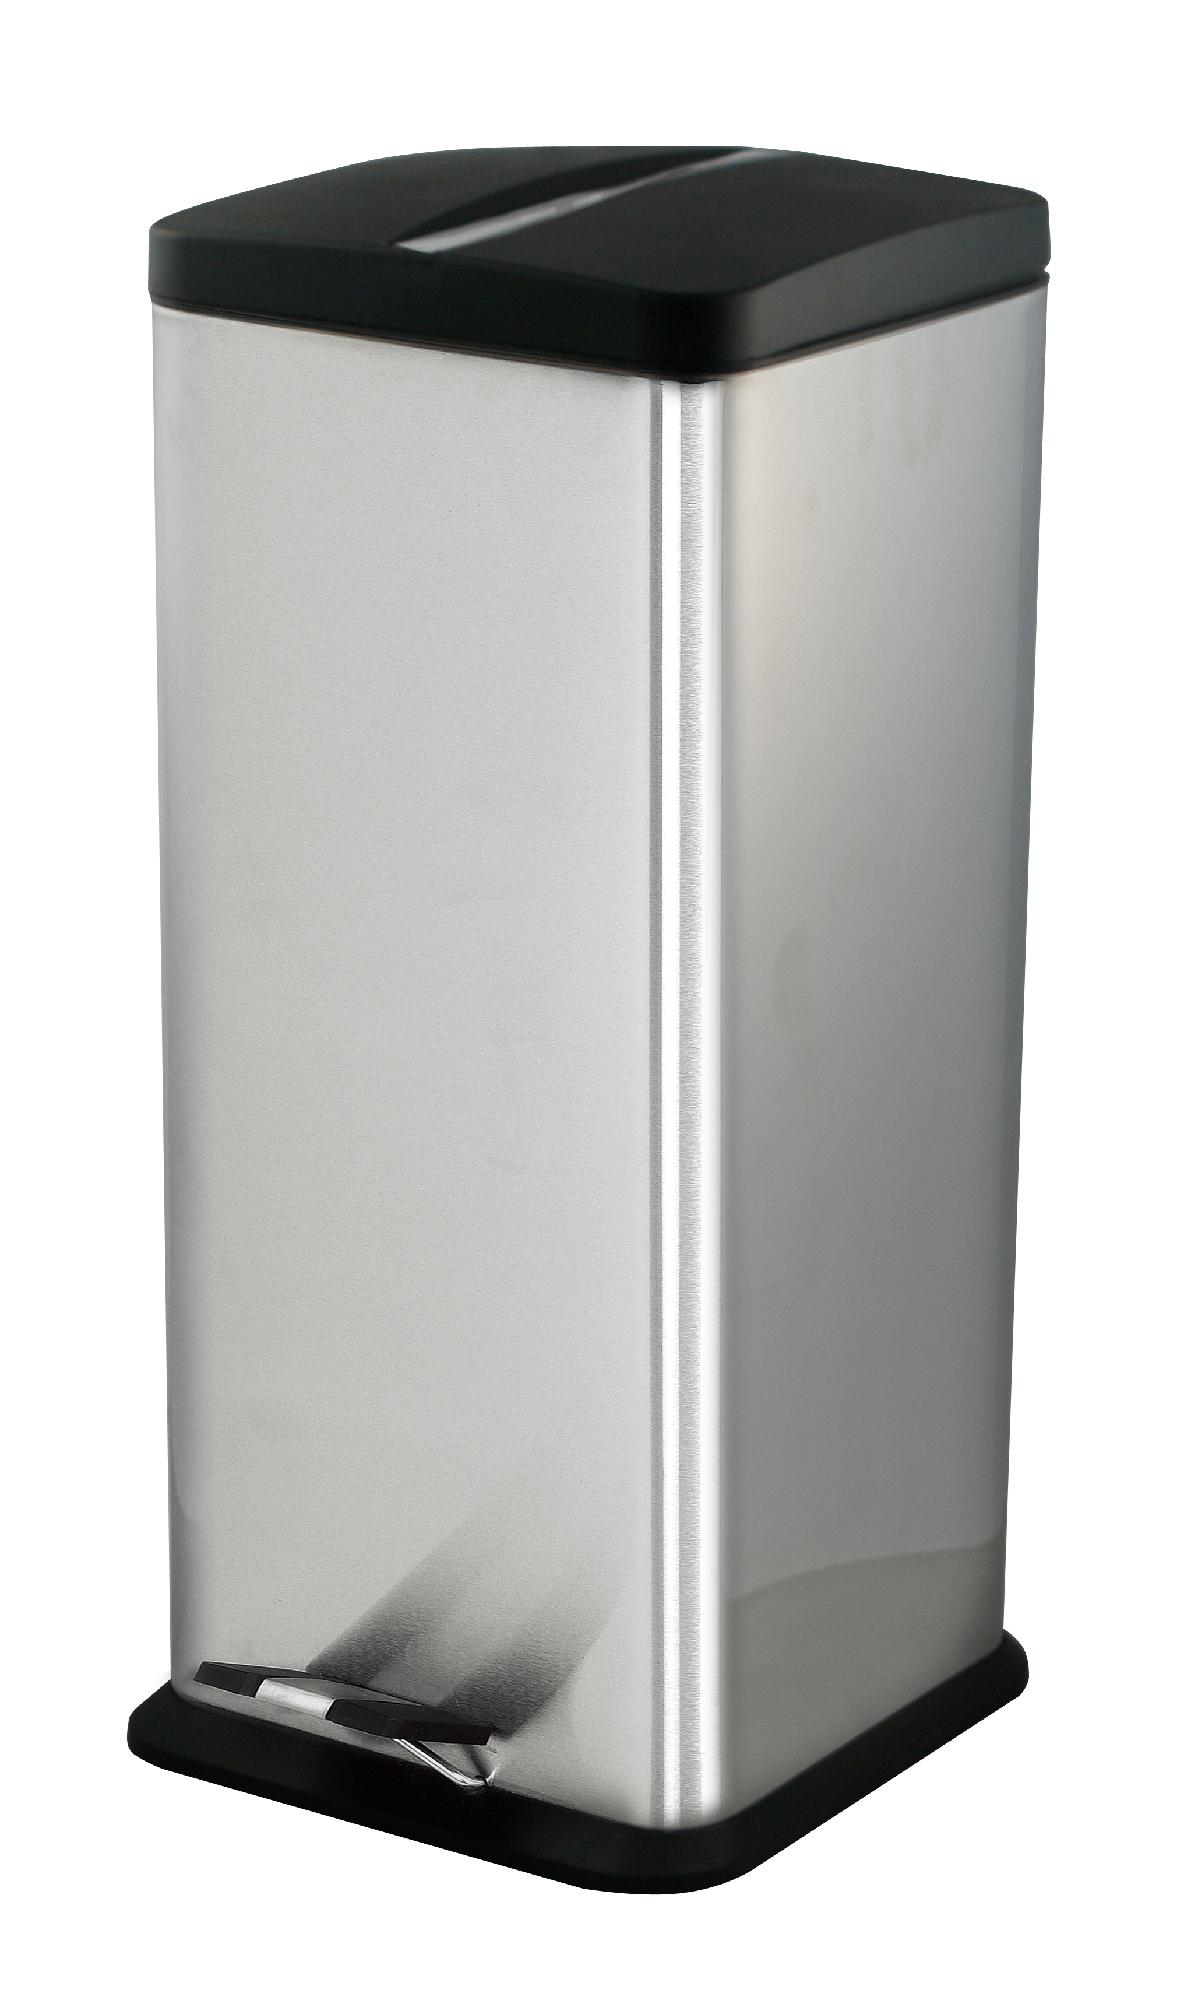 30 gallon kitchen trash can free standing cupboards ragalta 7 9 stainless steel bin home